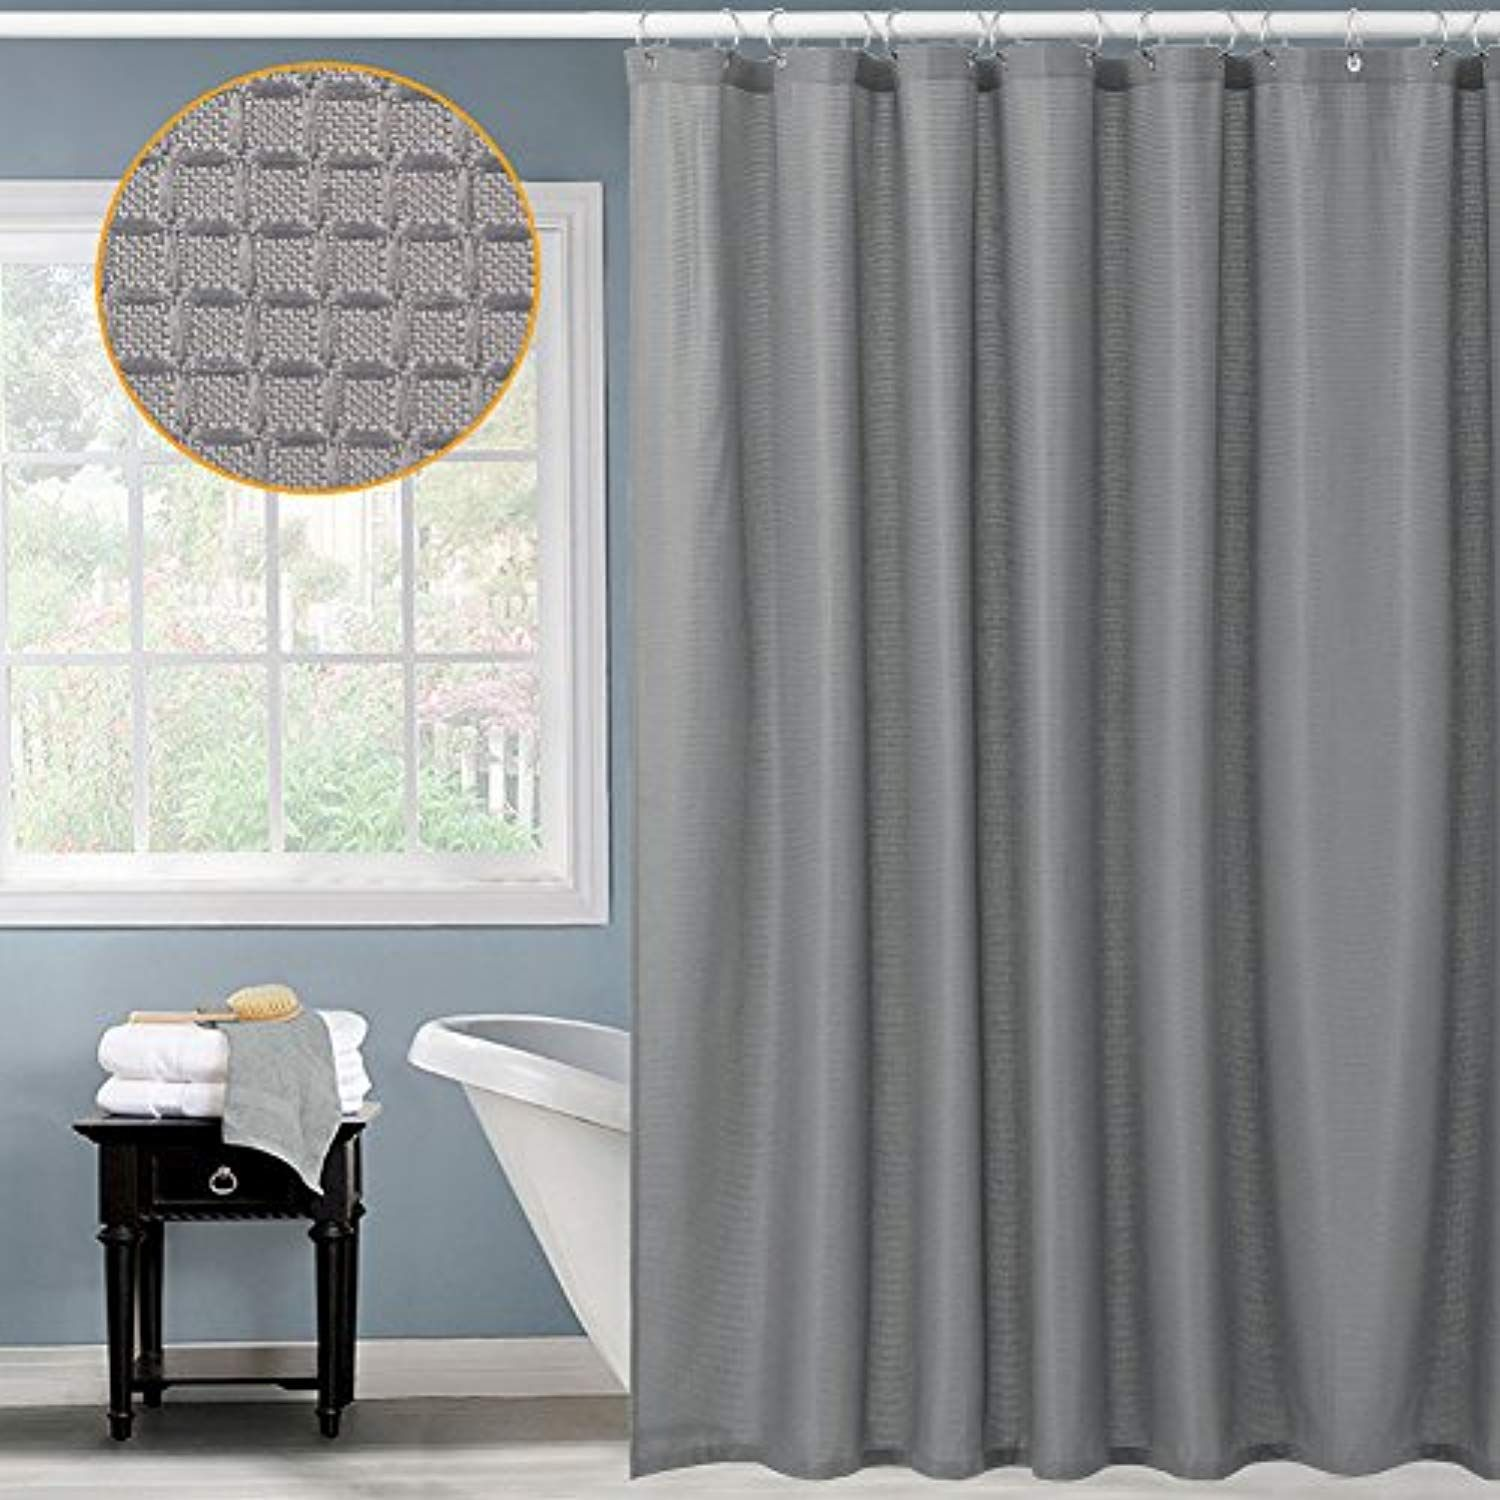 Waffle Fabric Shower Curtain For Bathroom Water Repellent Modern Mildew Resistant With Rustproof Metal Grommets Top 72x72 Inches